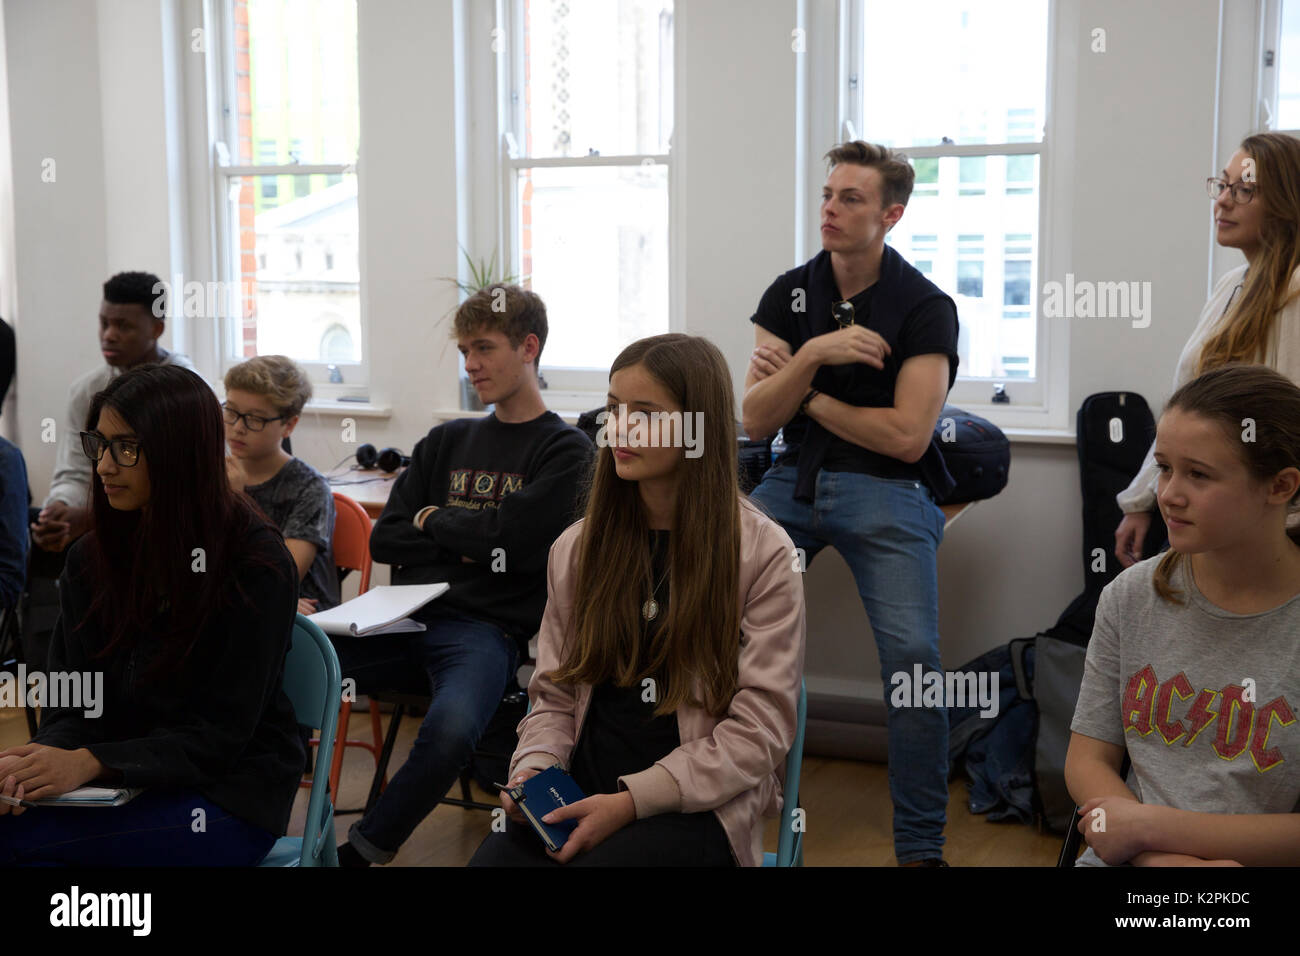 London, UK. 31st Aug, 2017. London's top young buskers took part in a boot camp with music industry experts at the Stock Photo